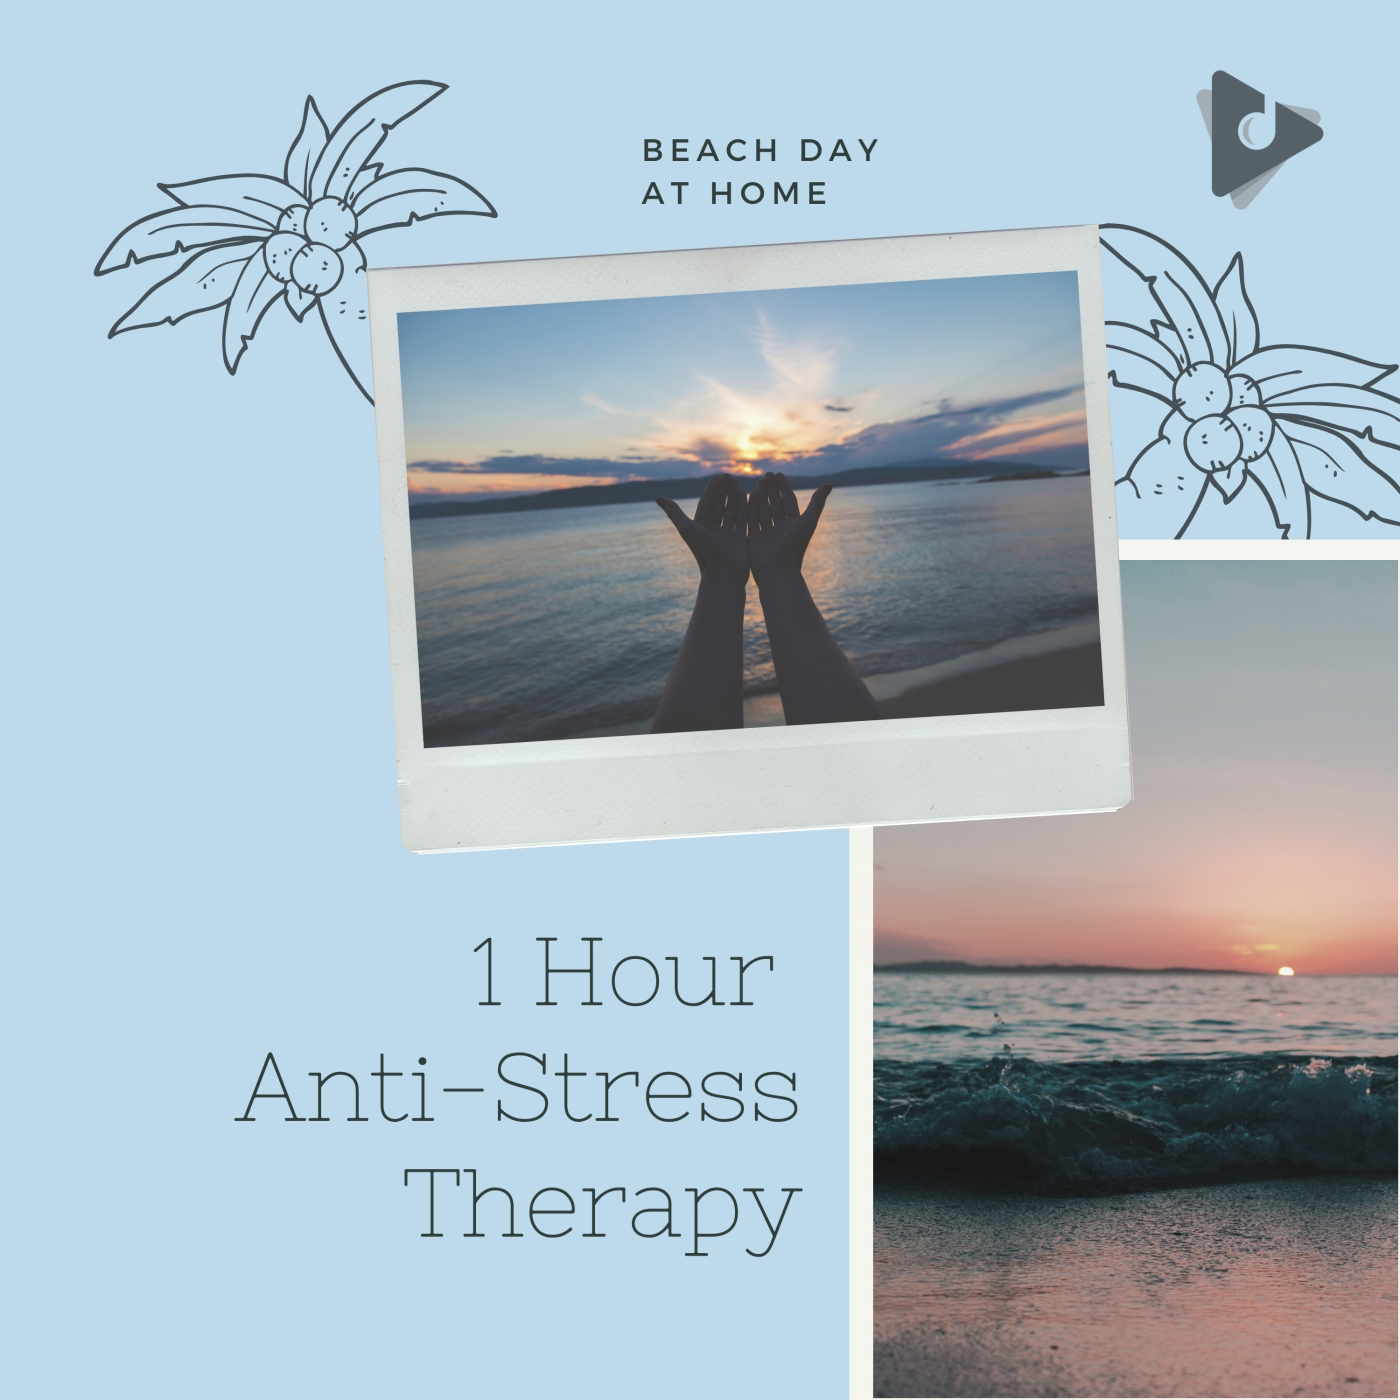 1 Hour Anti-Stress Therapy